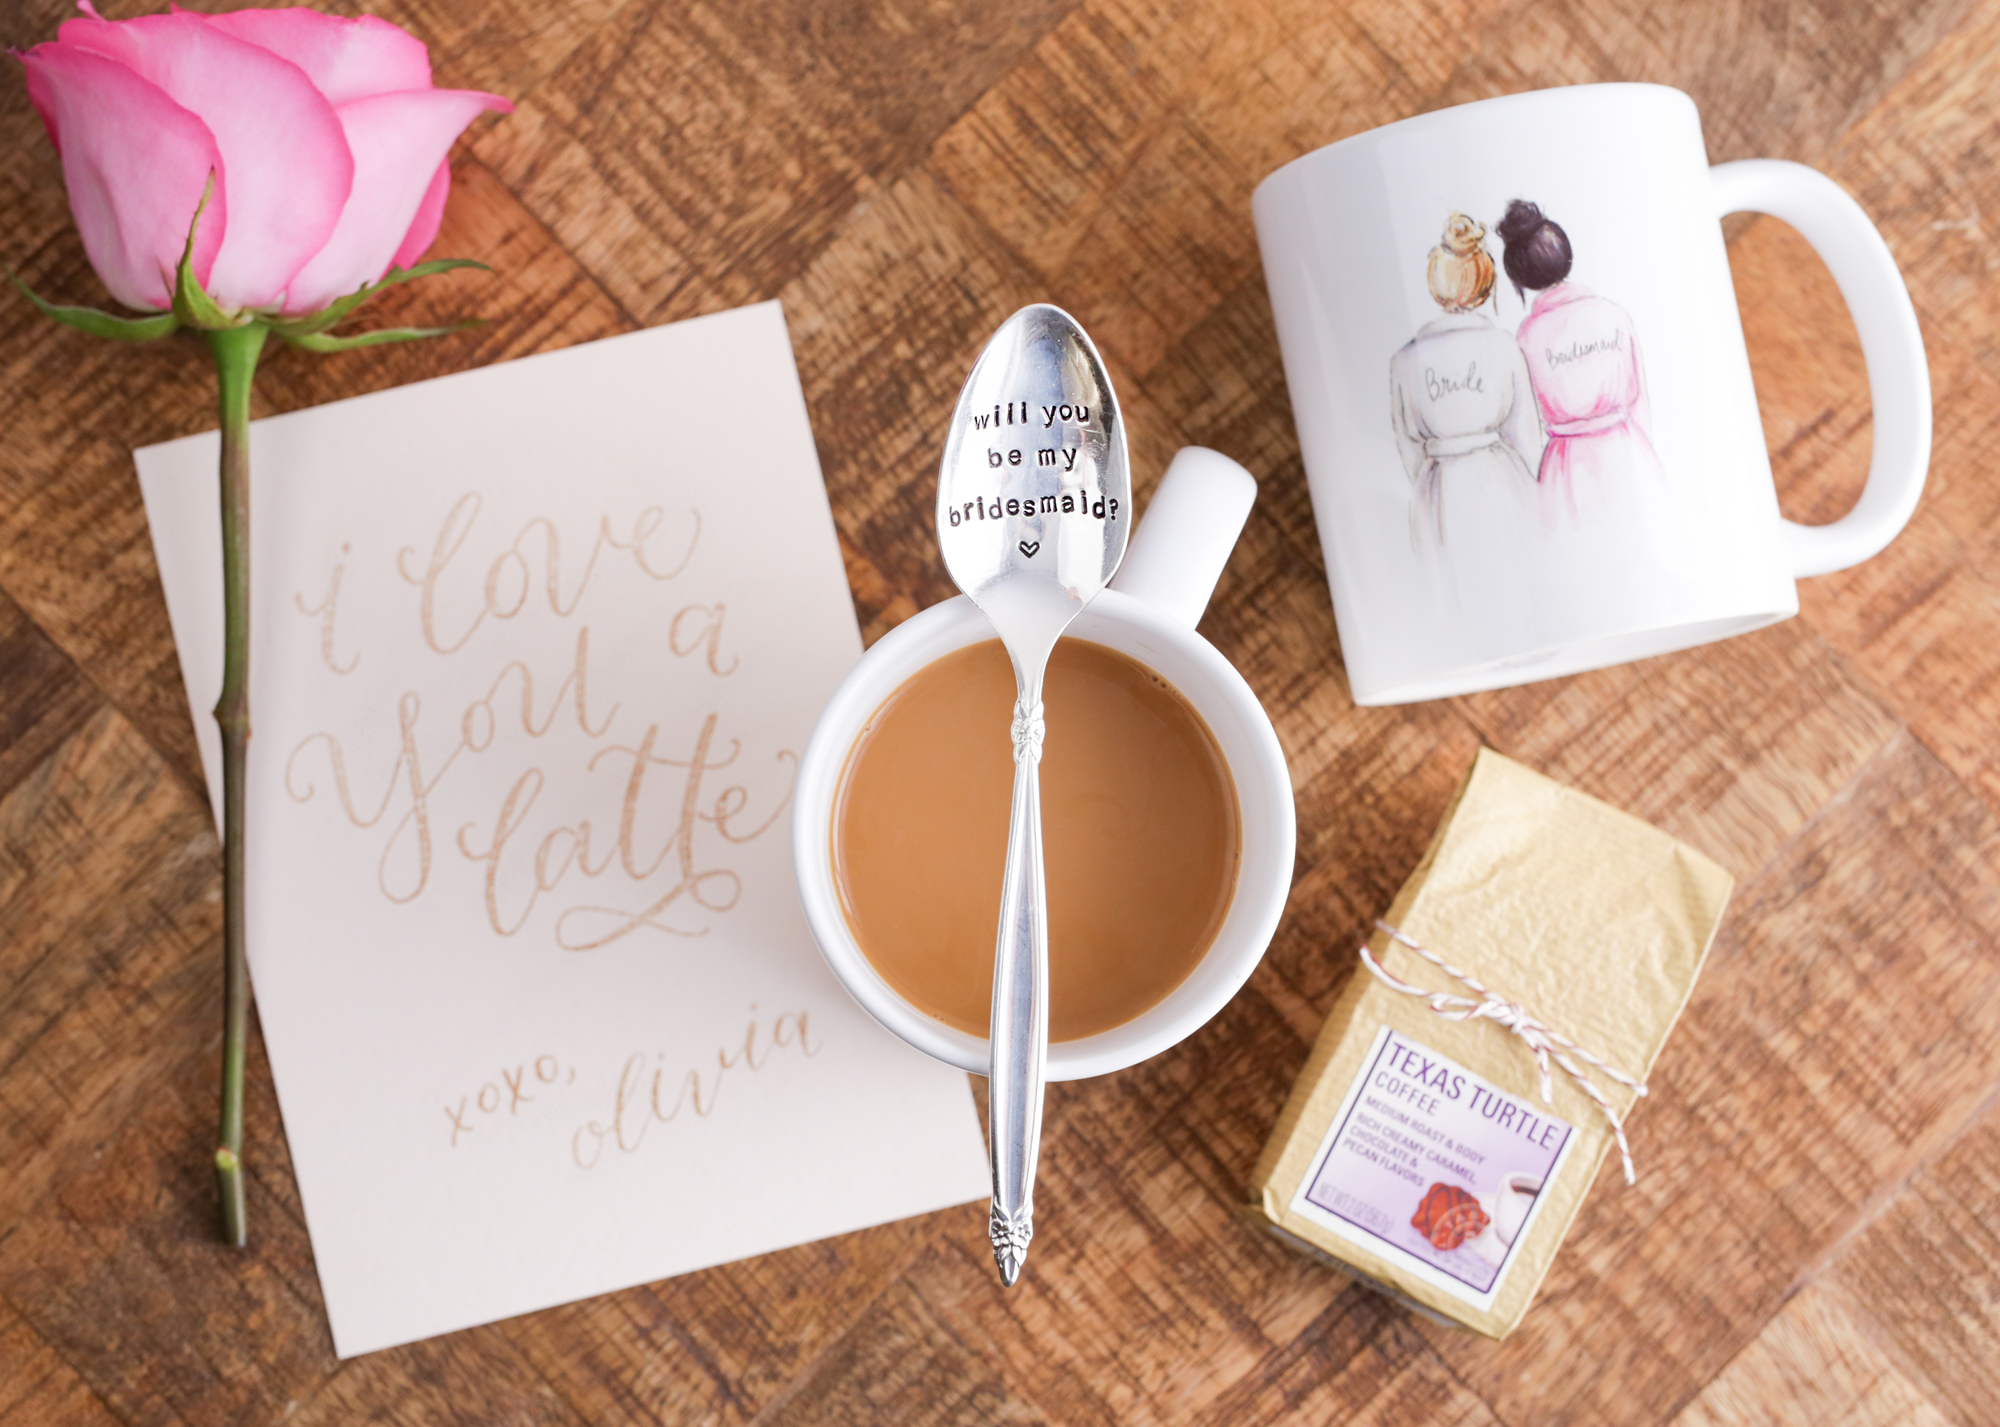 livvyland-style-me-pretty-for-such-a-time-designs-stamped-spoon-april-heather-art-bridesmaid-coffee-mug-bridal-party-asking-idea-4